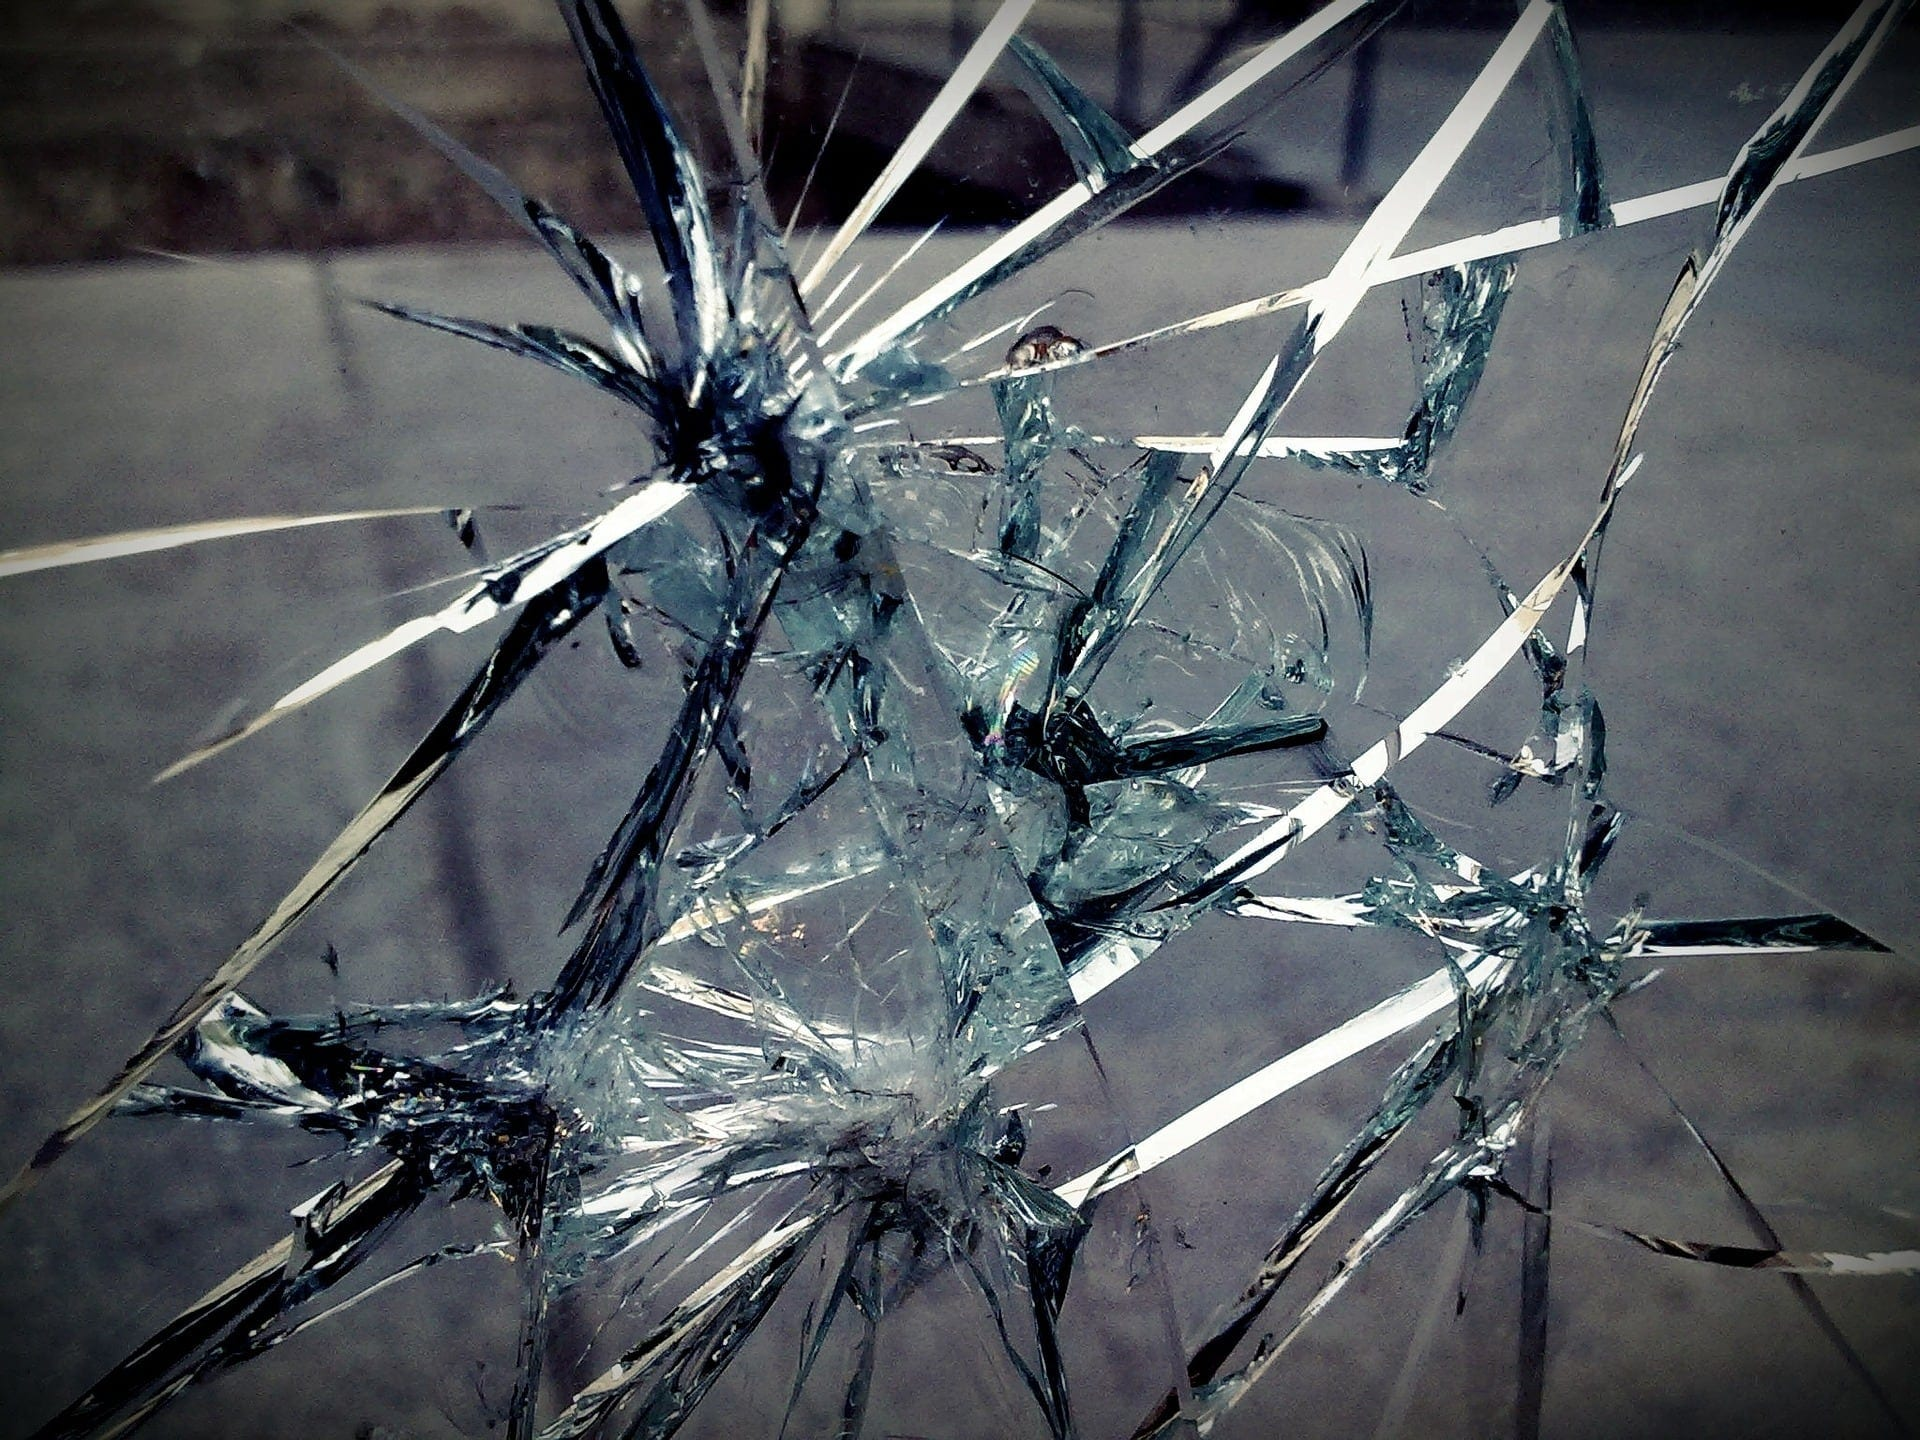 Why-is-it-dangerous-to-drive-with-a-broken-windshield?-Deans-Autoglass